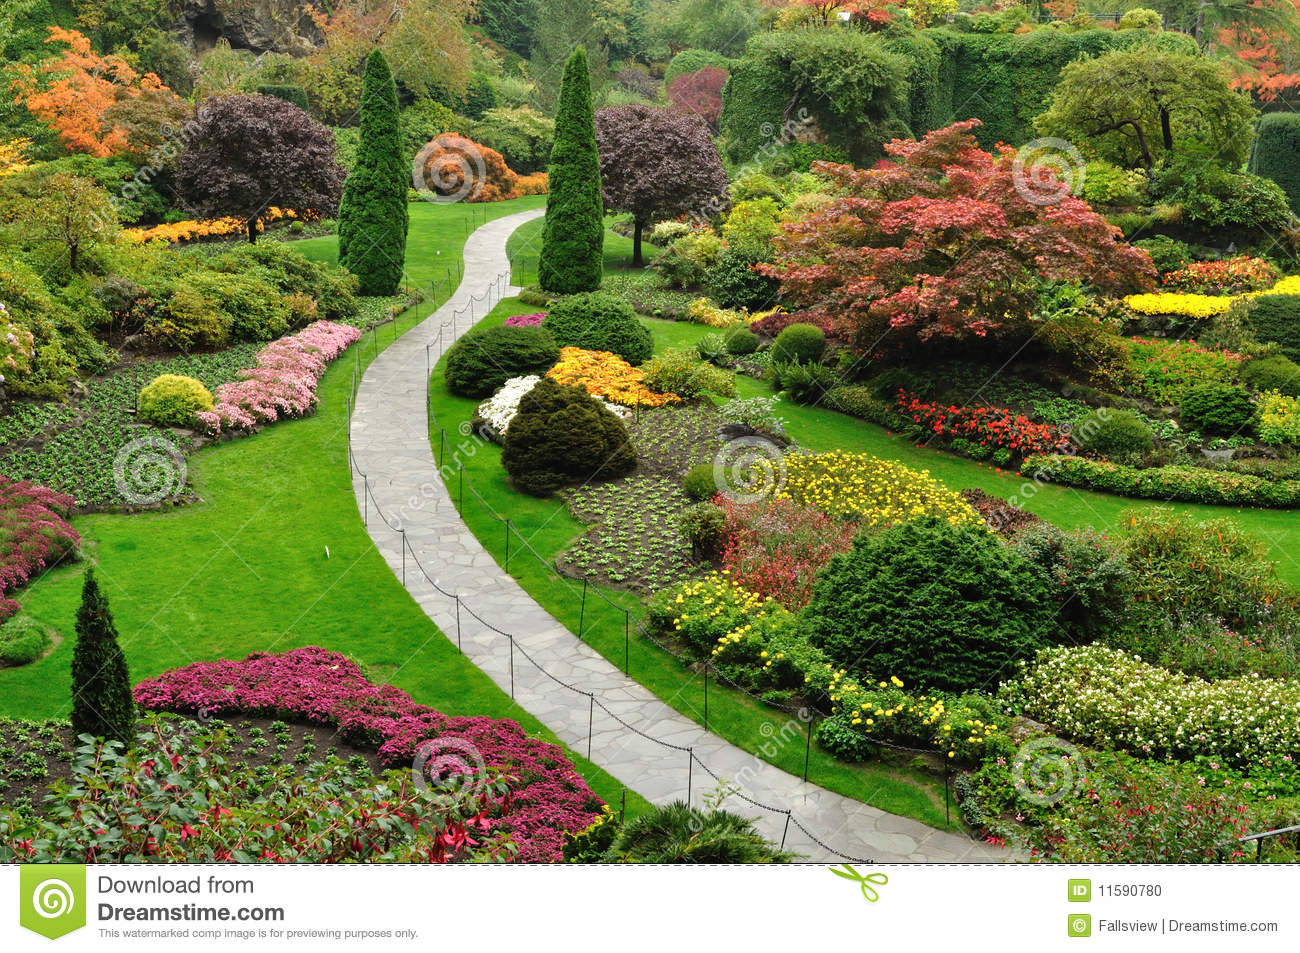 Am nagement de jardins photo stock image 11590780 for Amenagement jardin photos